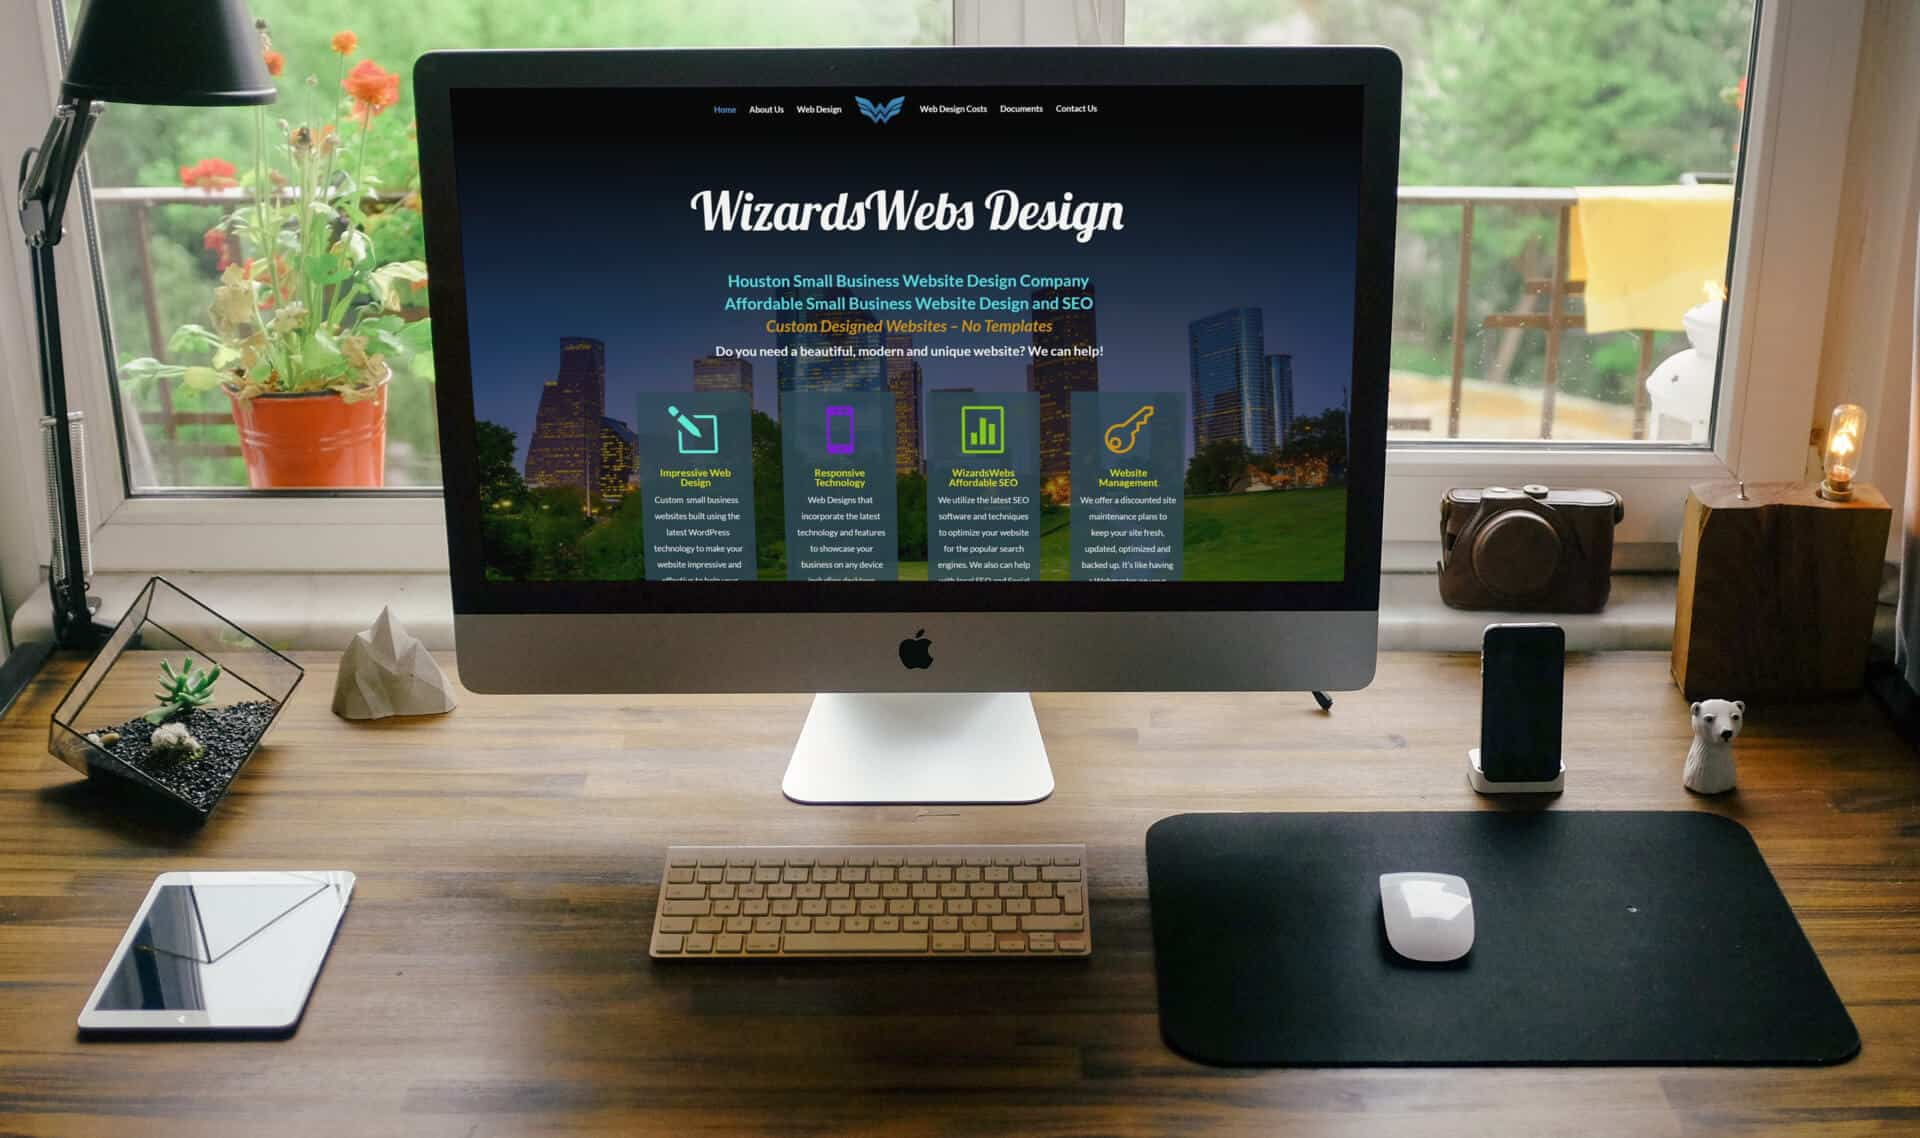 Affordable Small Business Website Design Company - Web Design